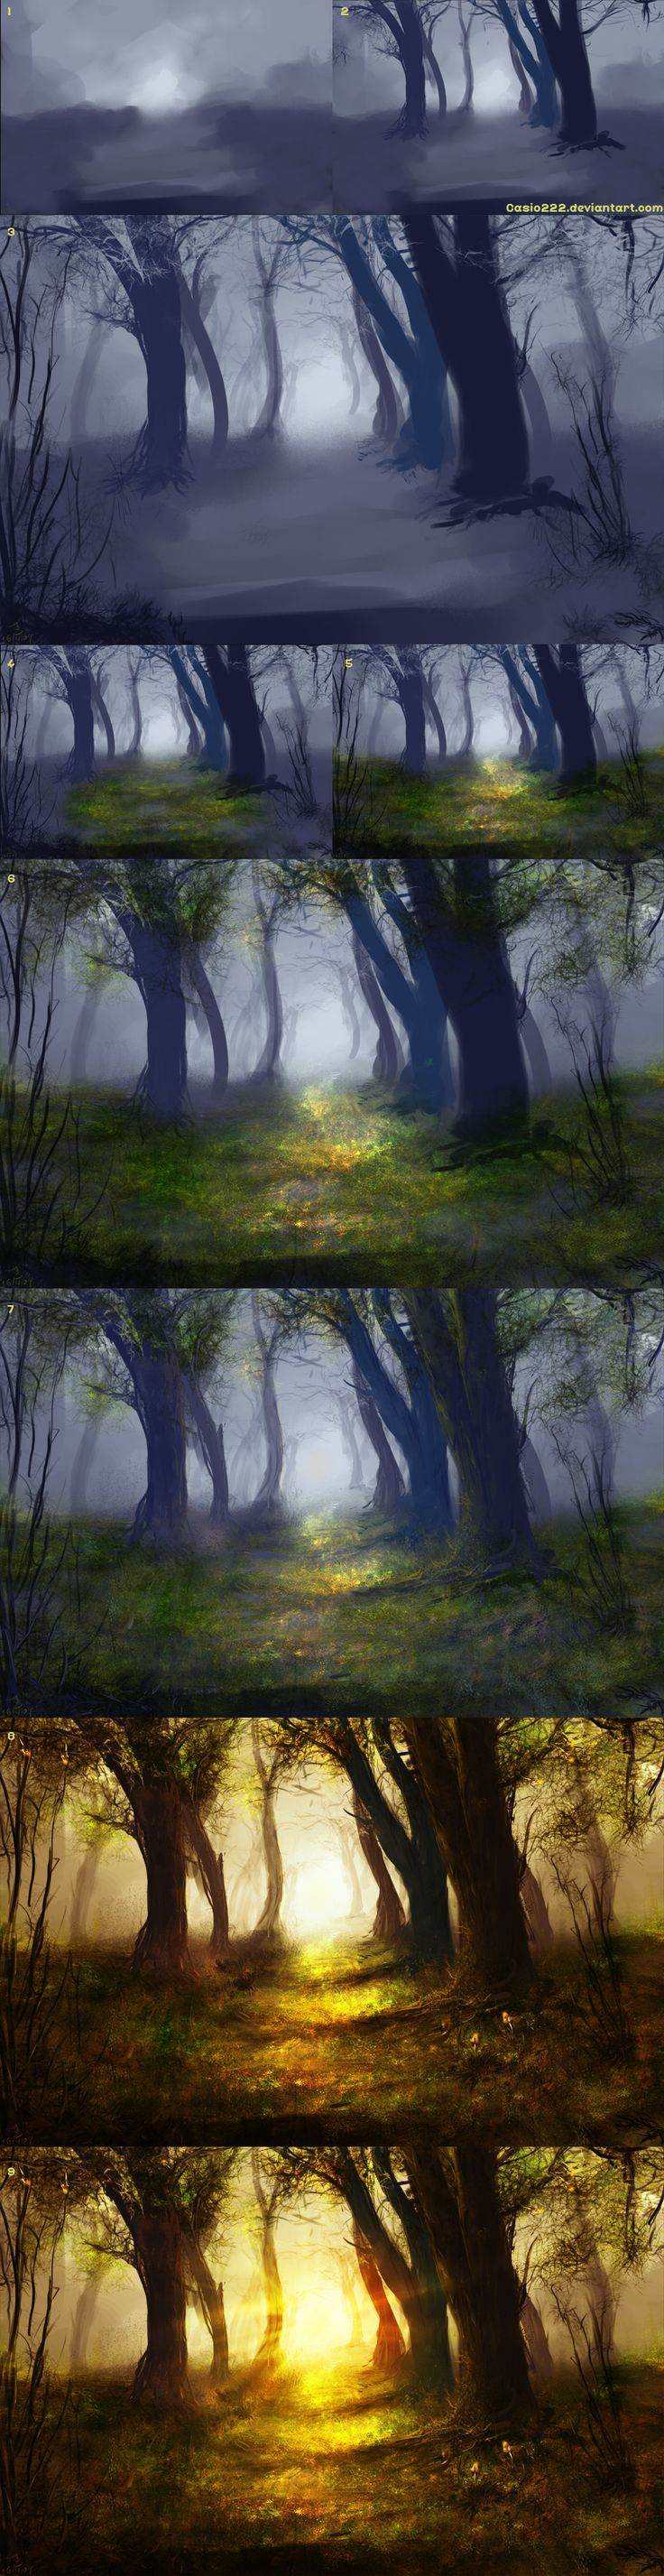 Beyond The Path - Process by casio222.deviantart.com on @deviantART